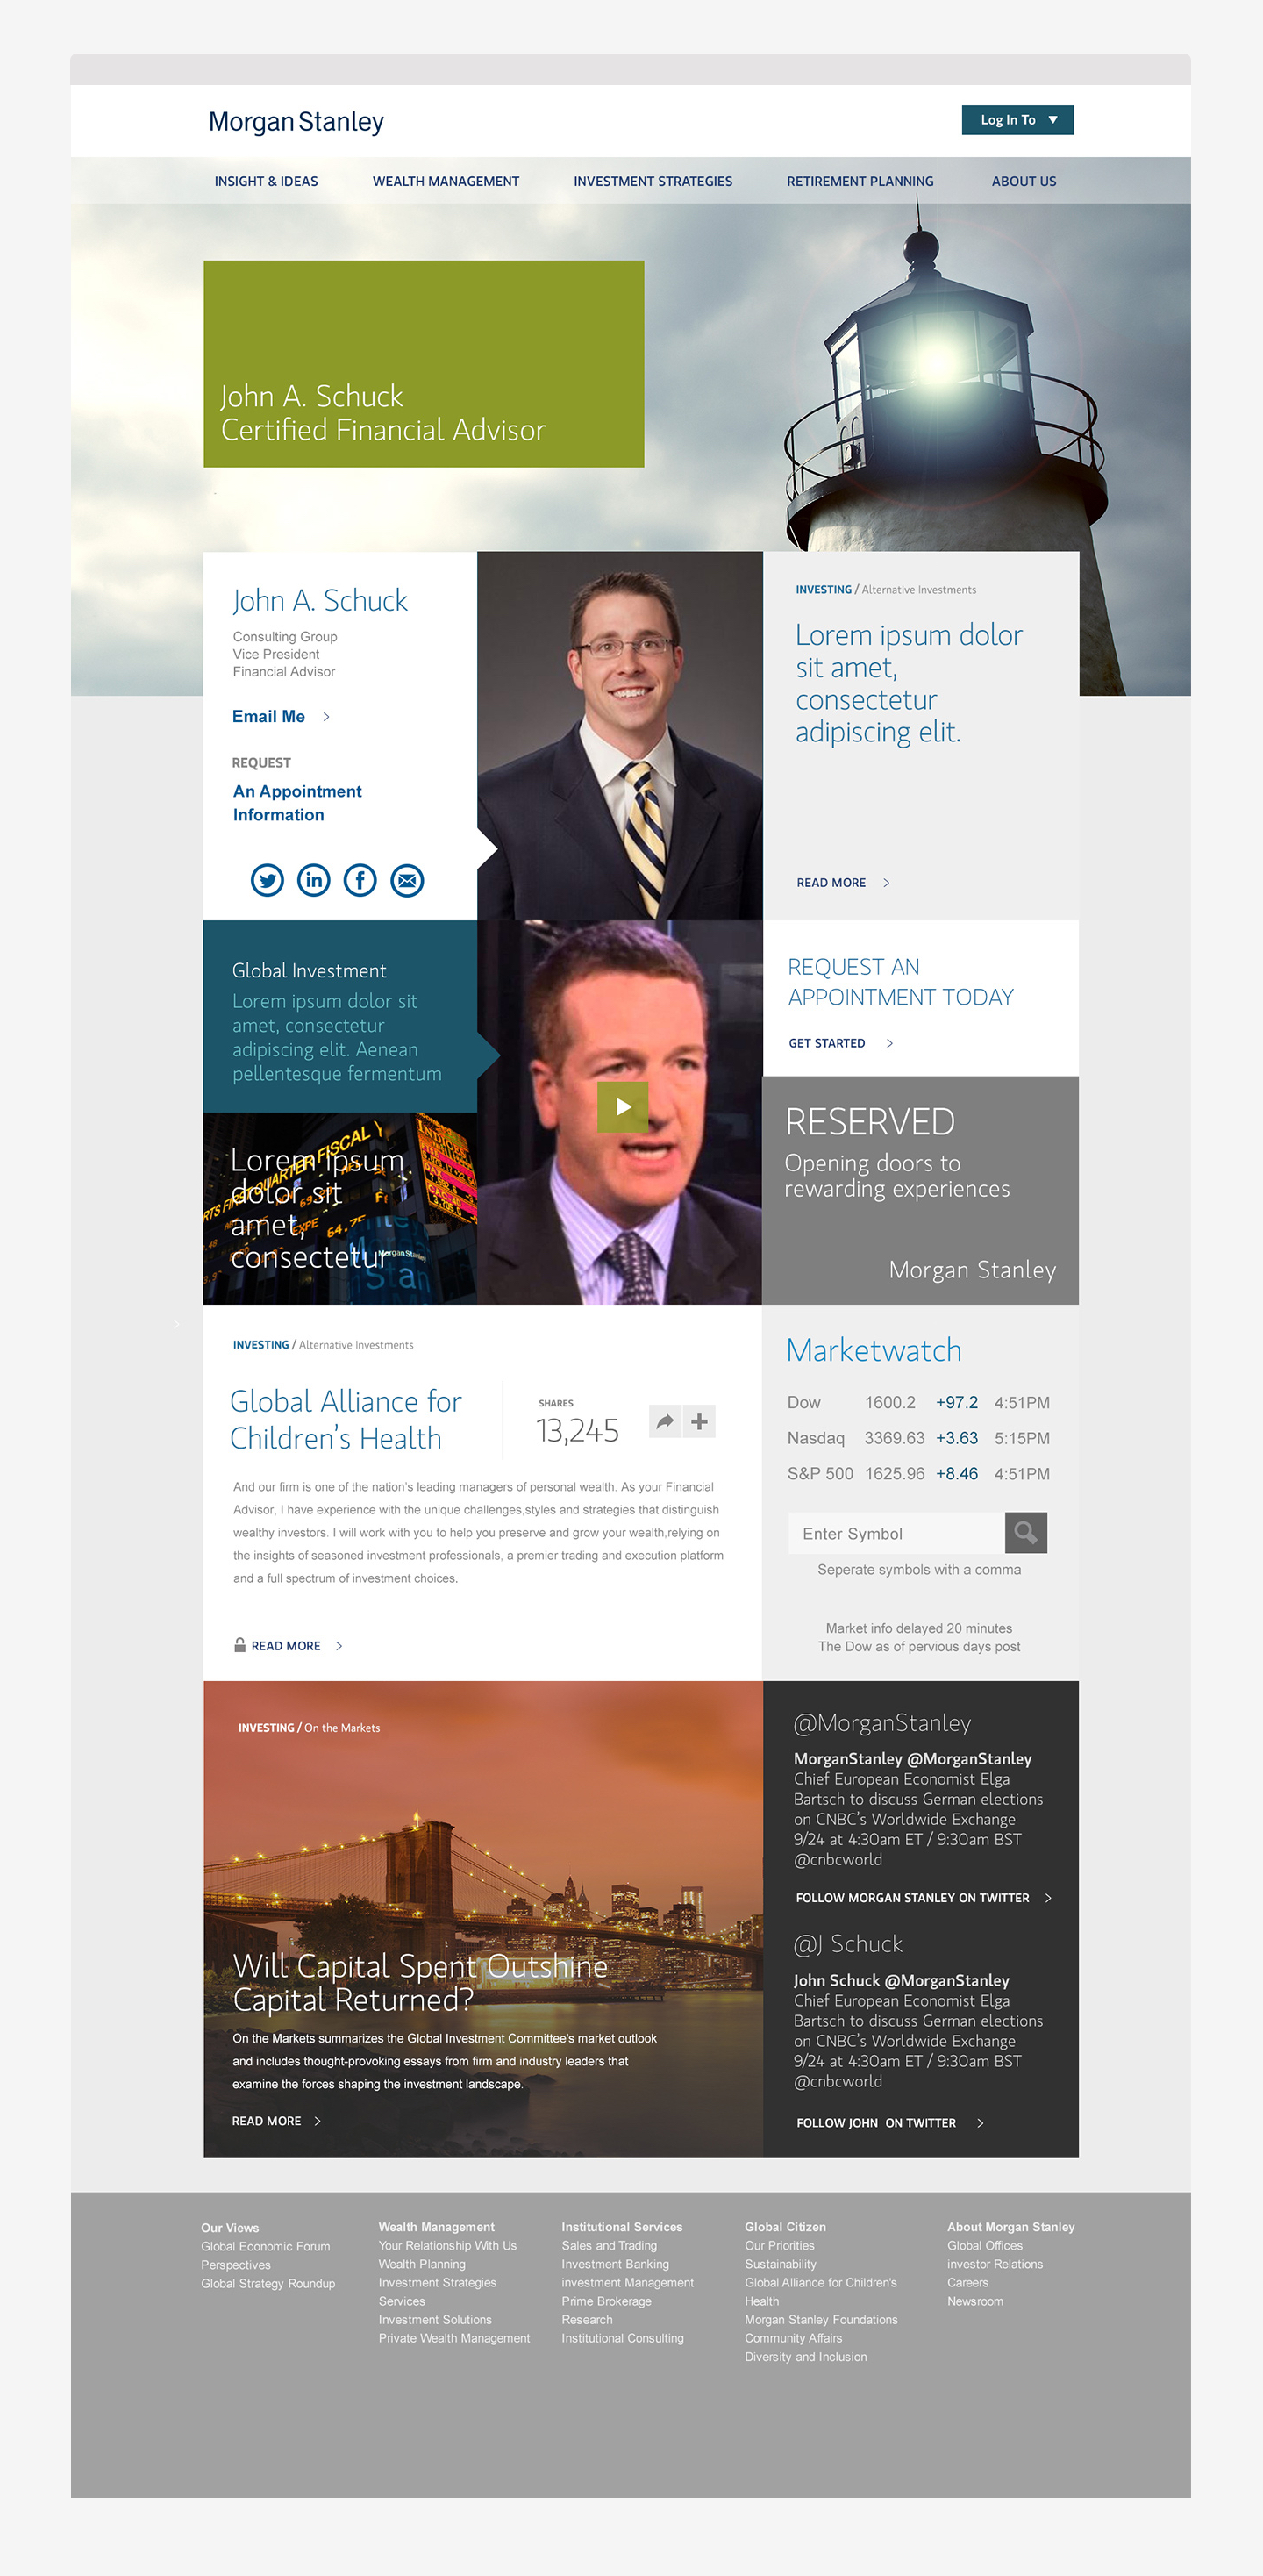 Morgan Stanley Desktop